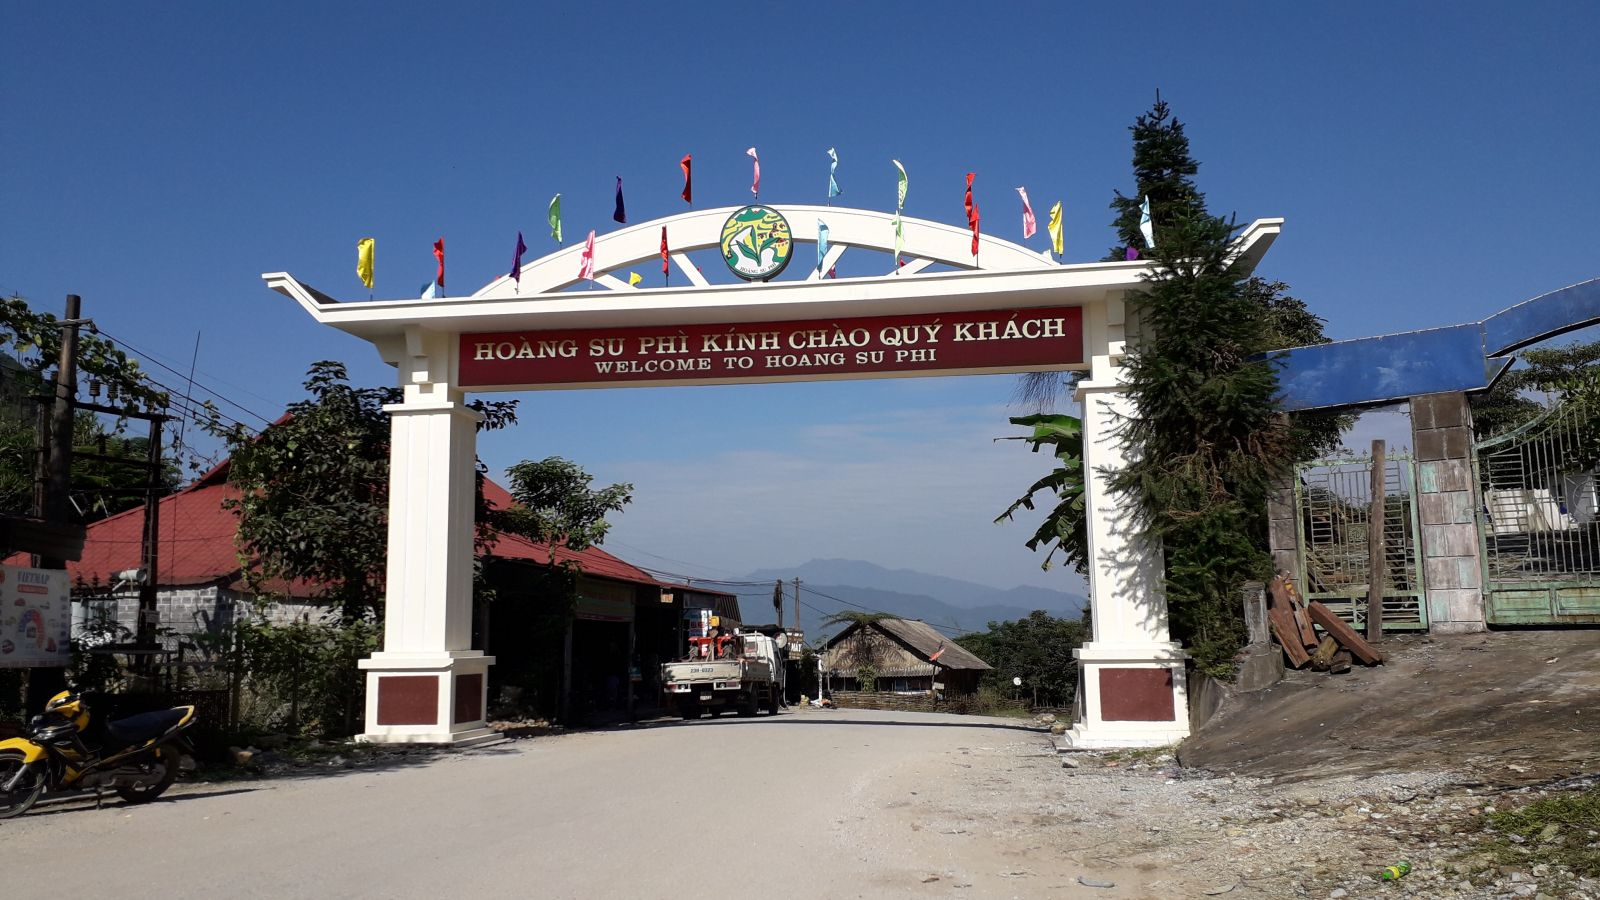 Hoang Su Phi welcome gate